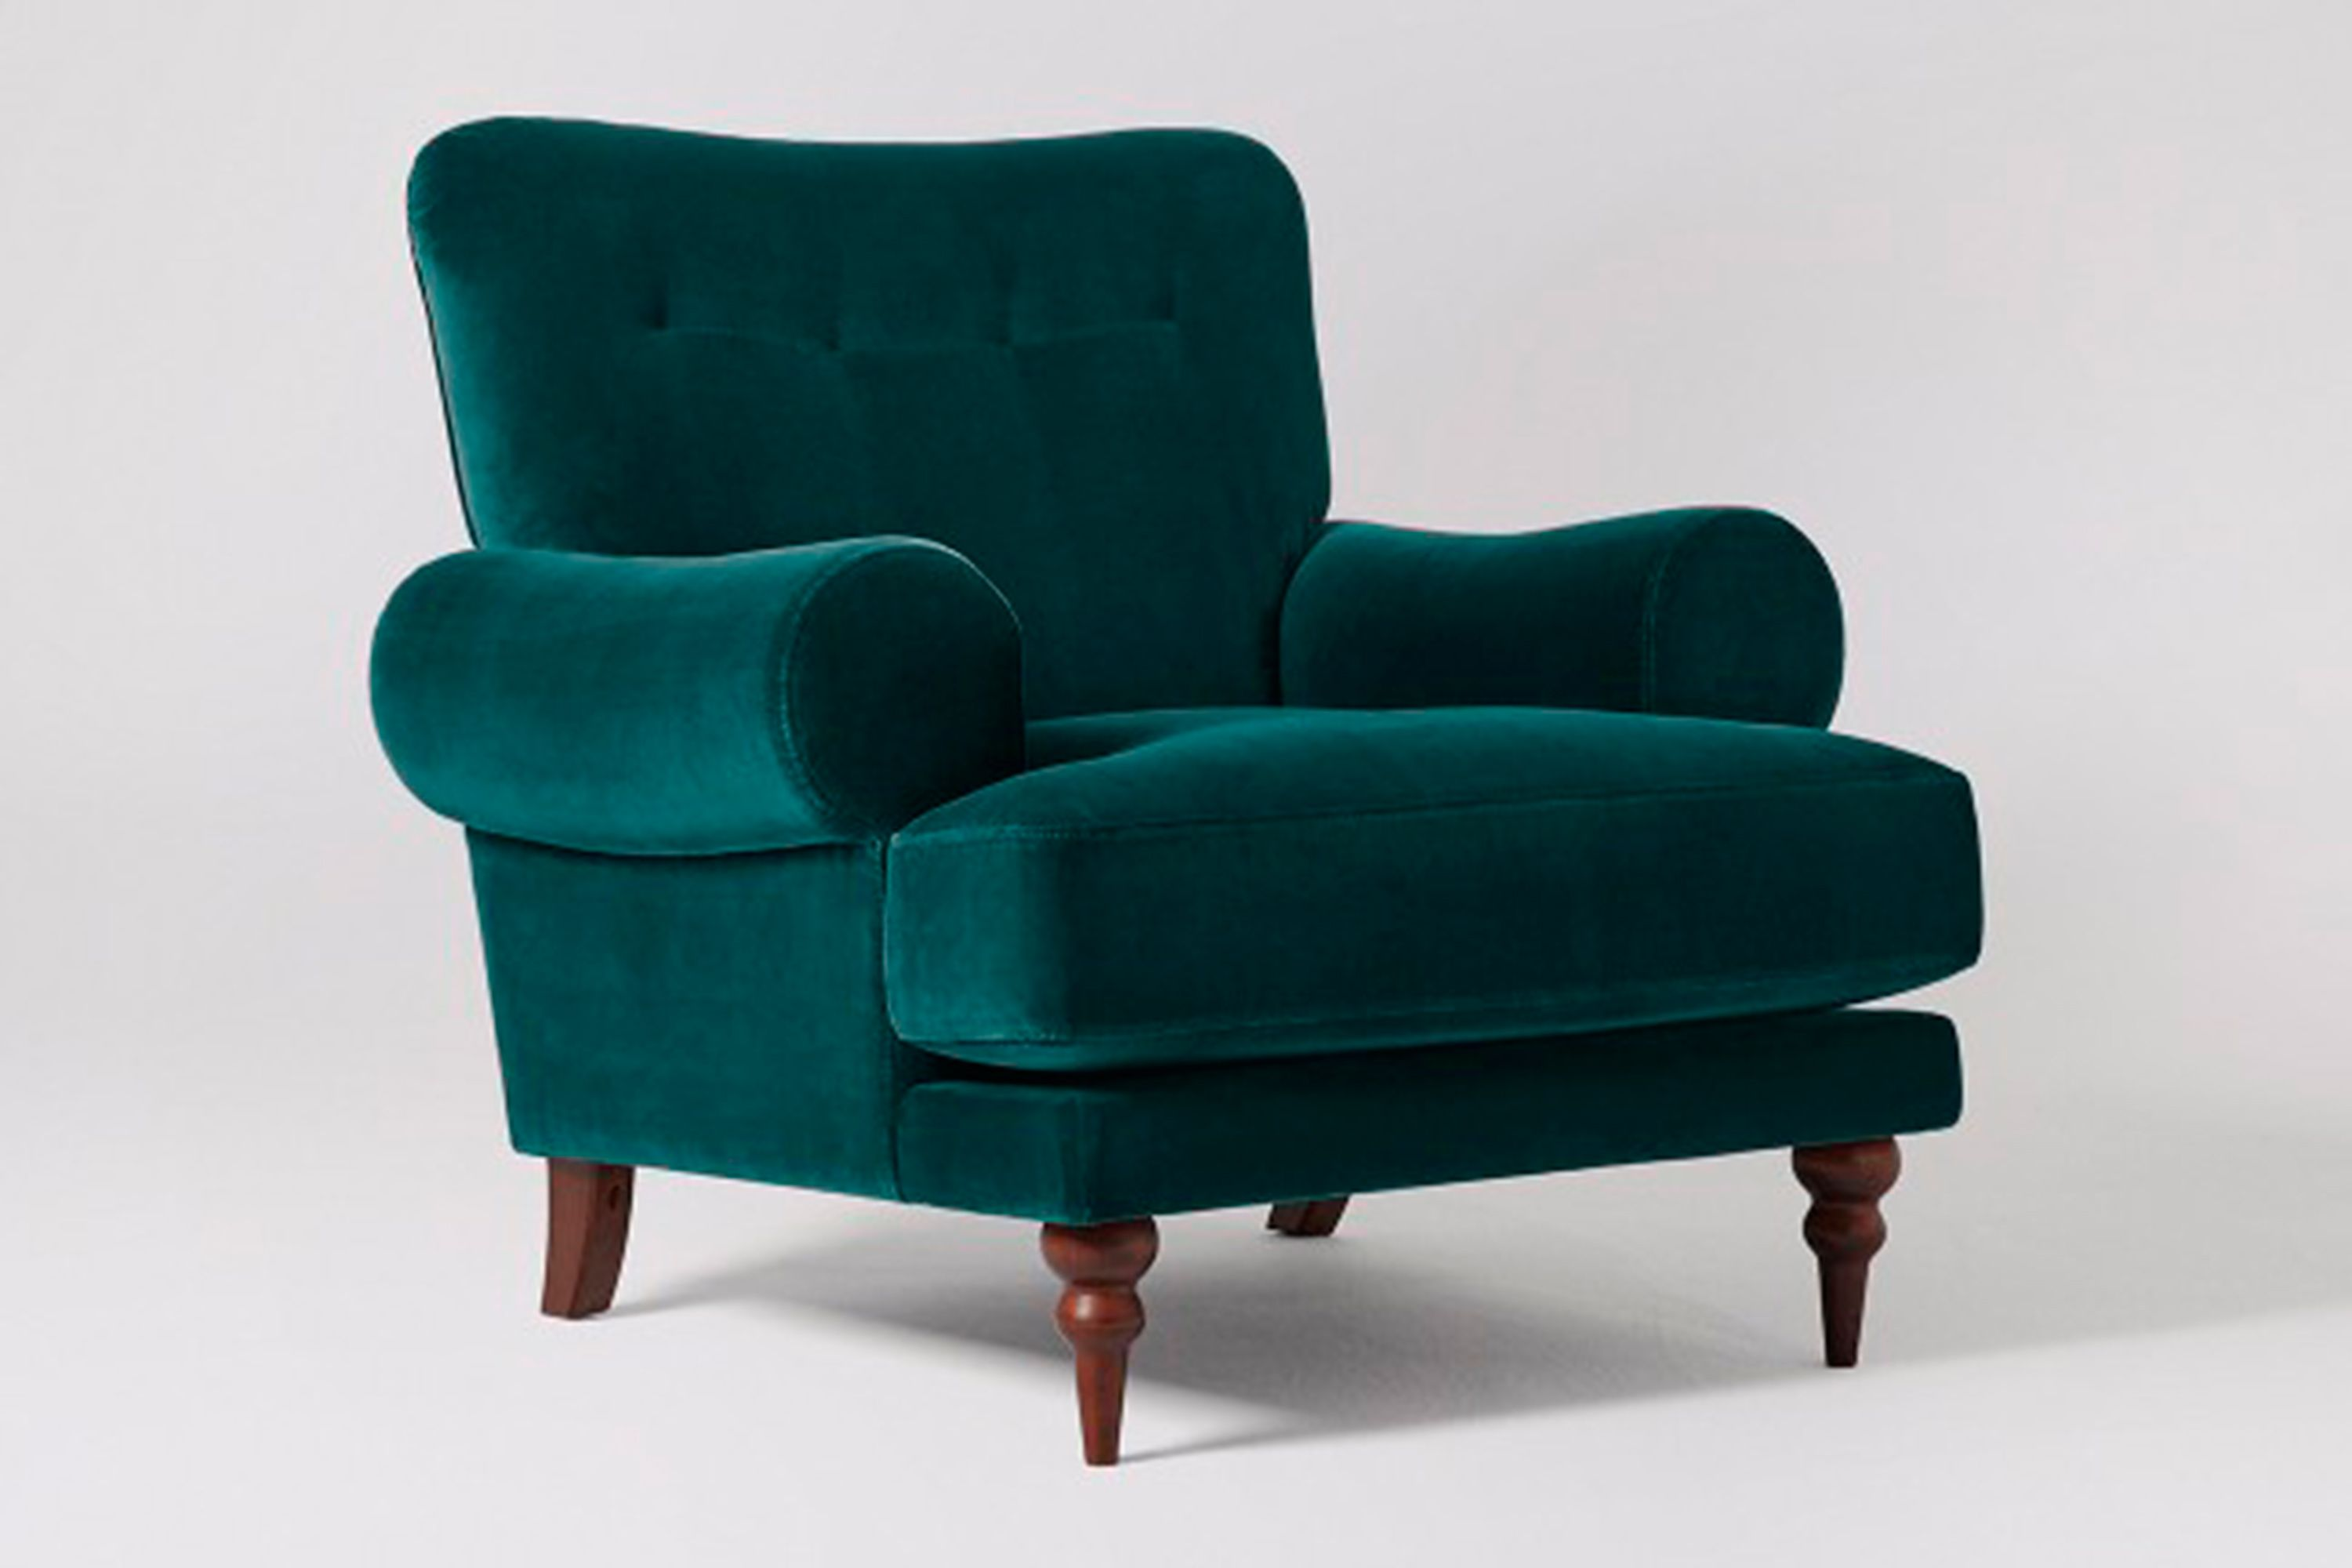 Best velvet chairs and sofas